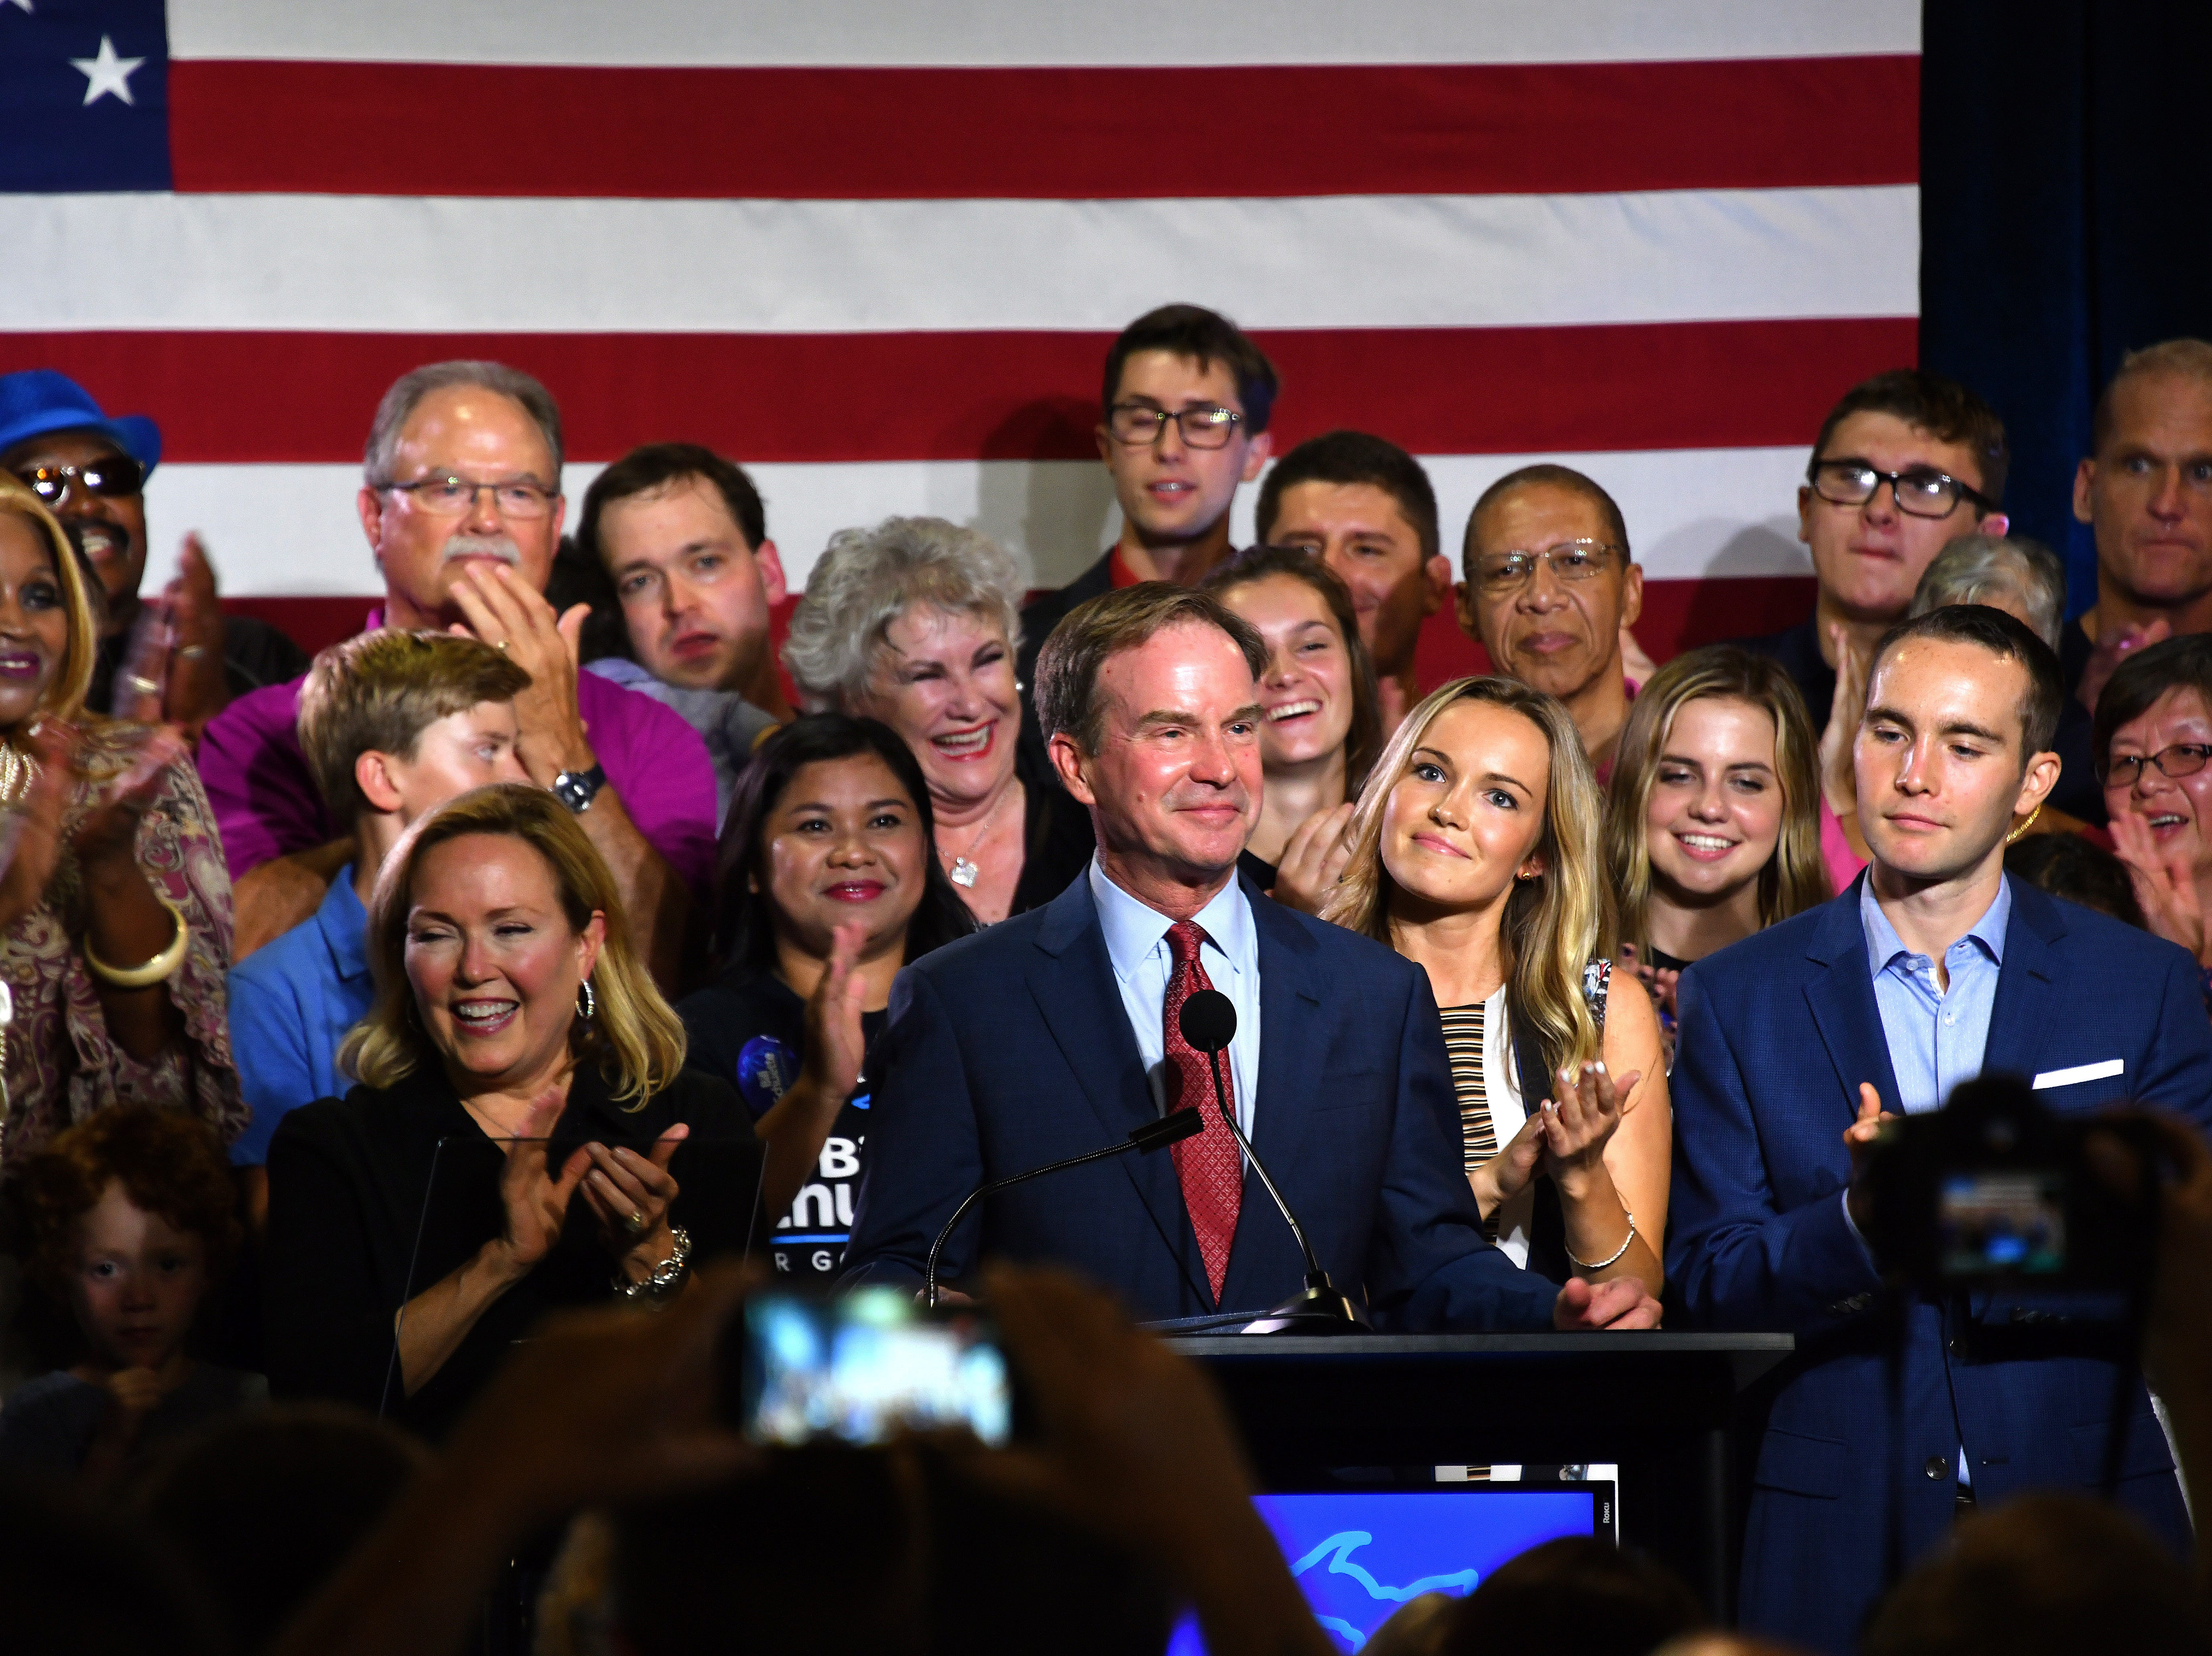 Michigan Attorney General Bill Schuette and his family greet supporters and announce he has won the Republican party's candidacy for Michigan governor.